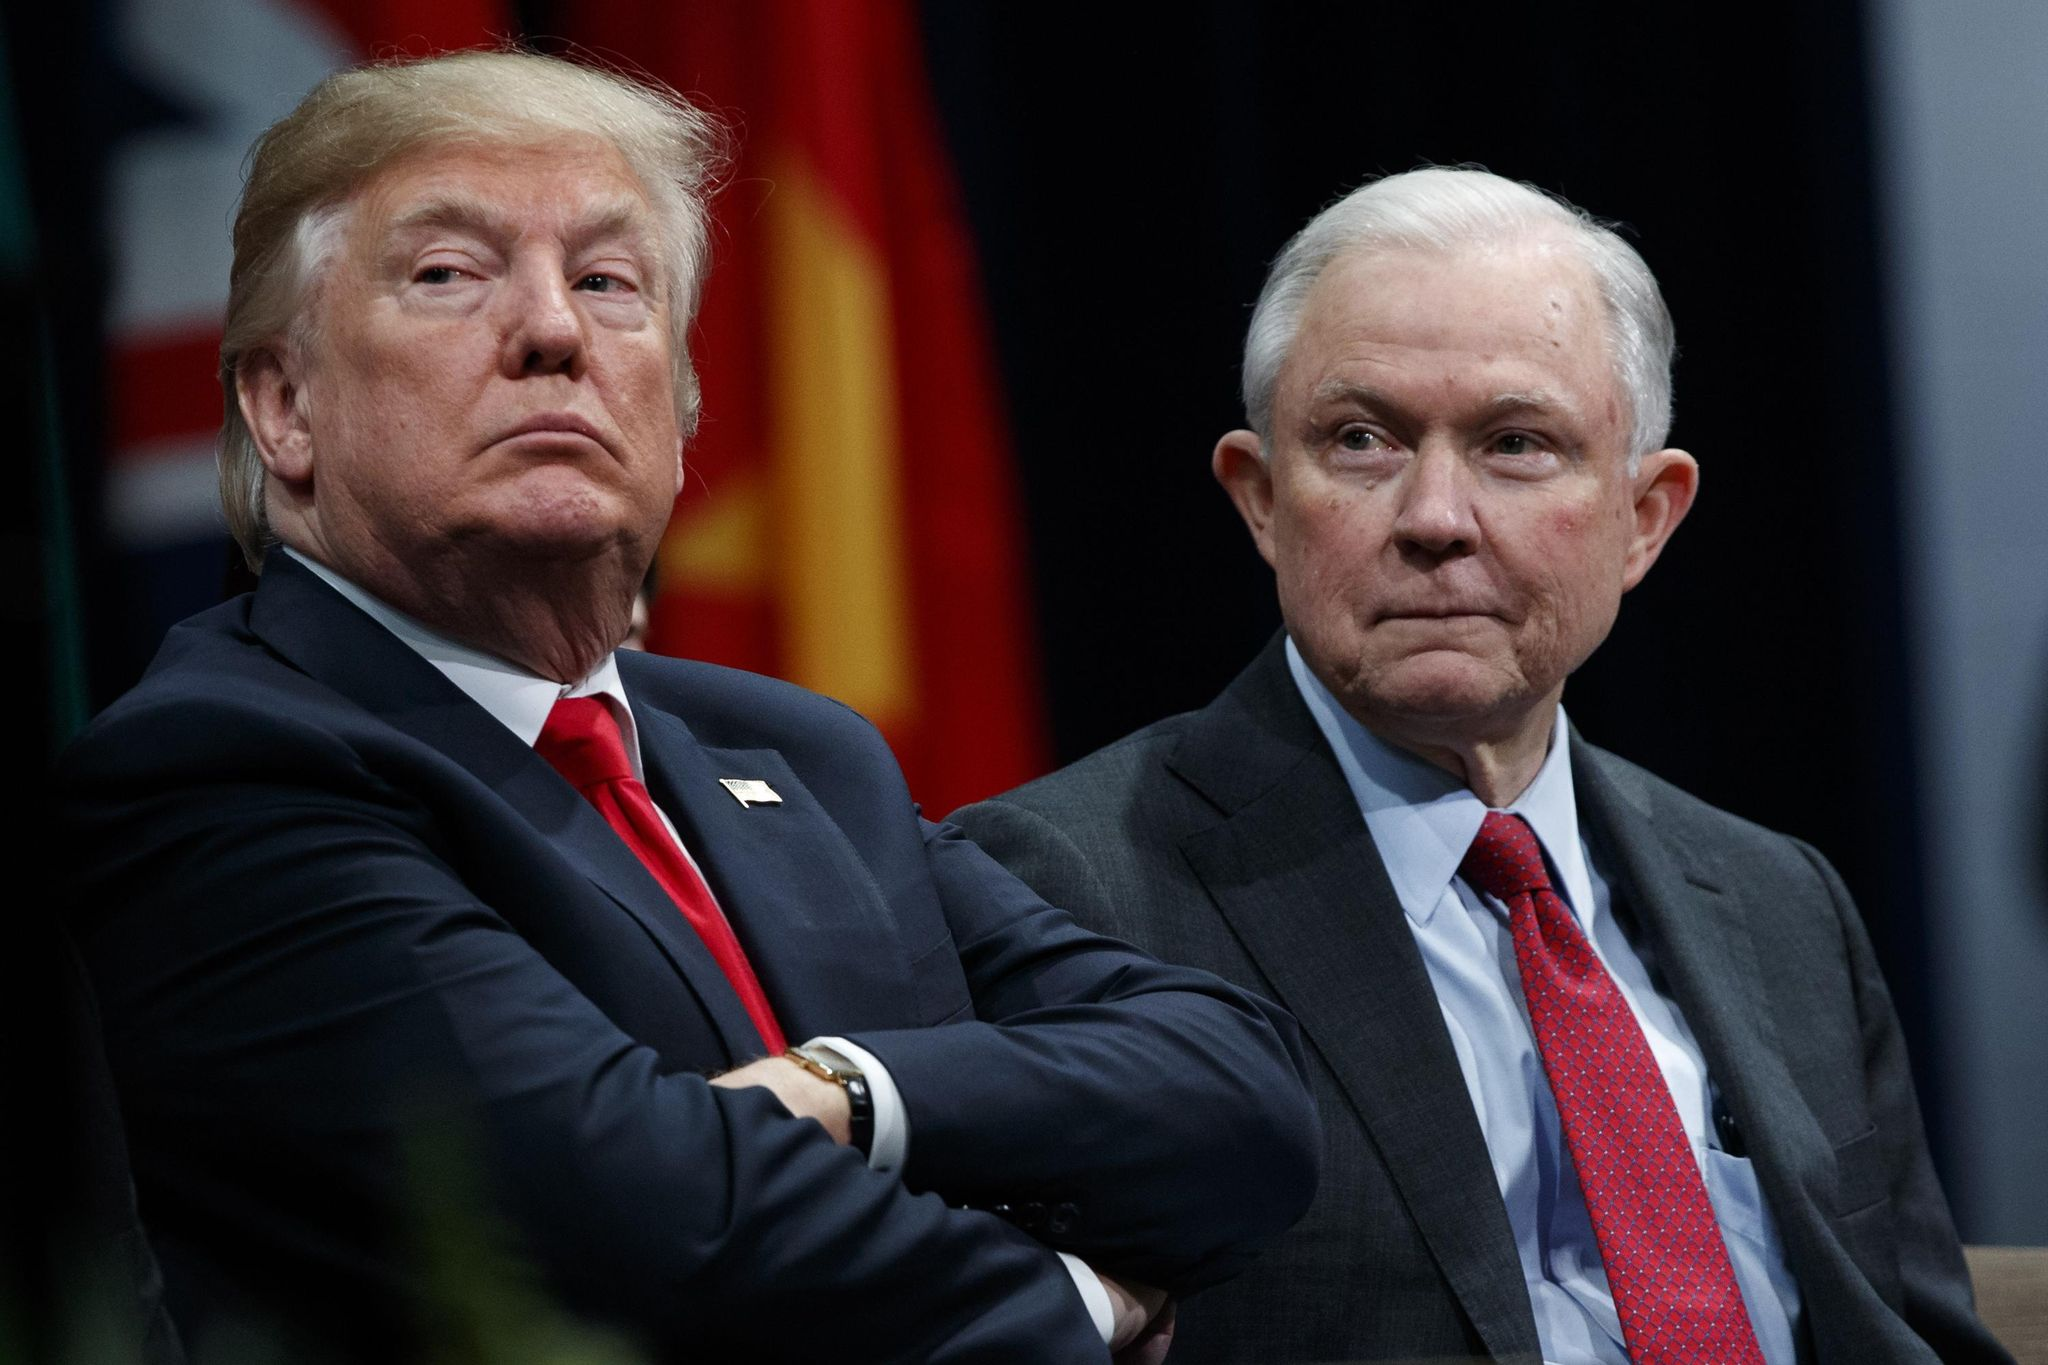 Donald Trump spoke with Jeff Sessions' aide about replacing him as attorney general: Report